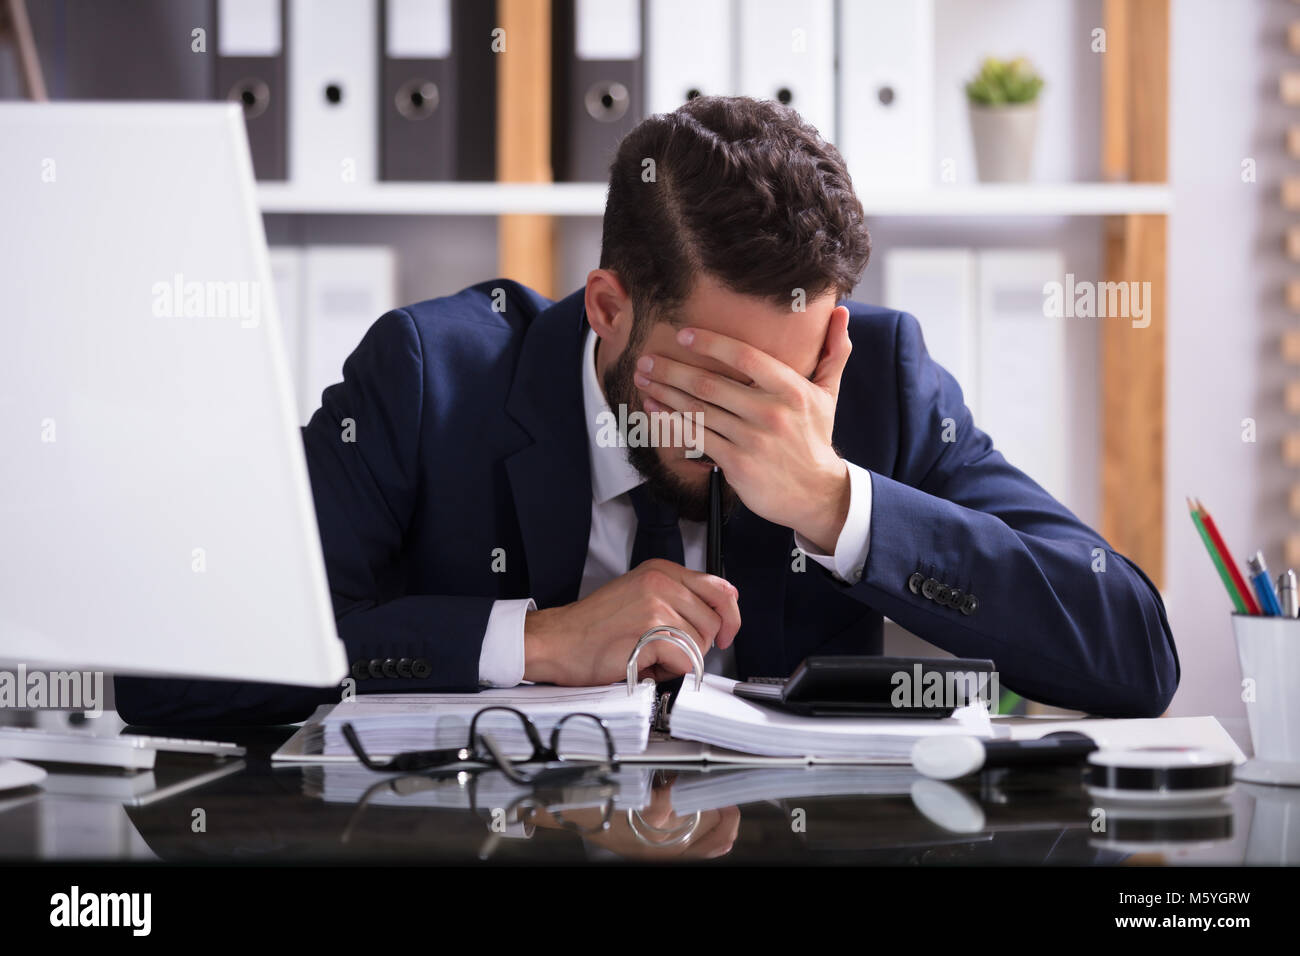 Young Man Suffering From Headache Working In Office With Bill Over Desk Stock Photo